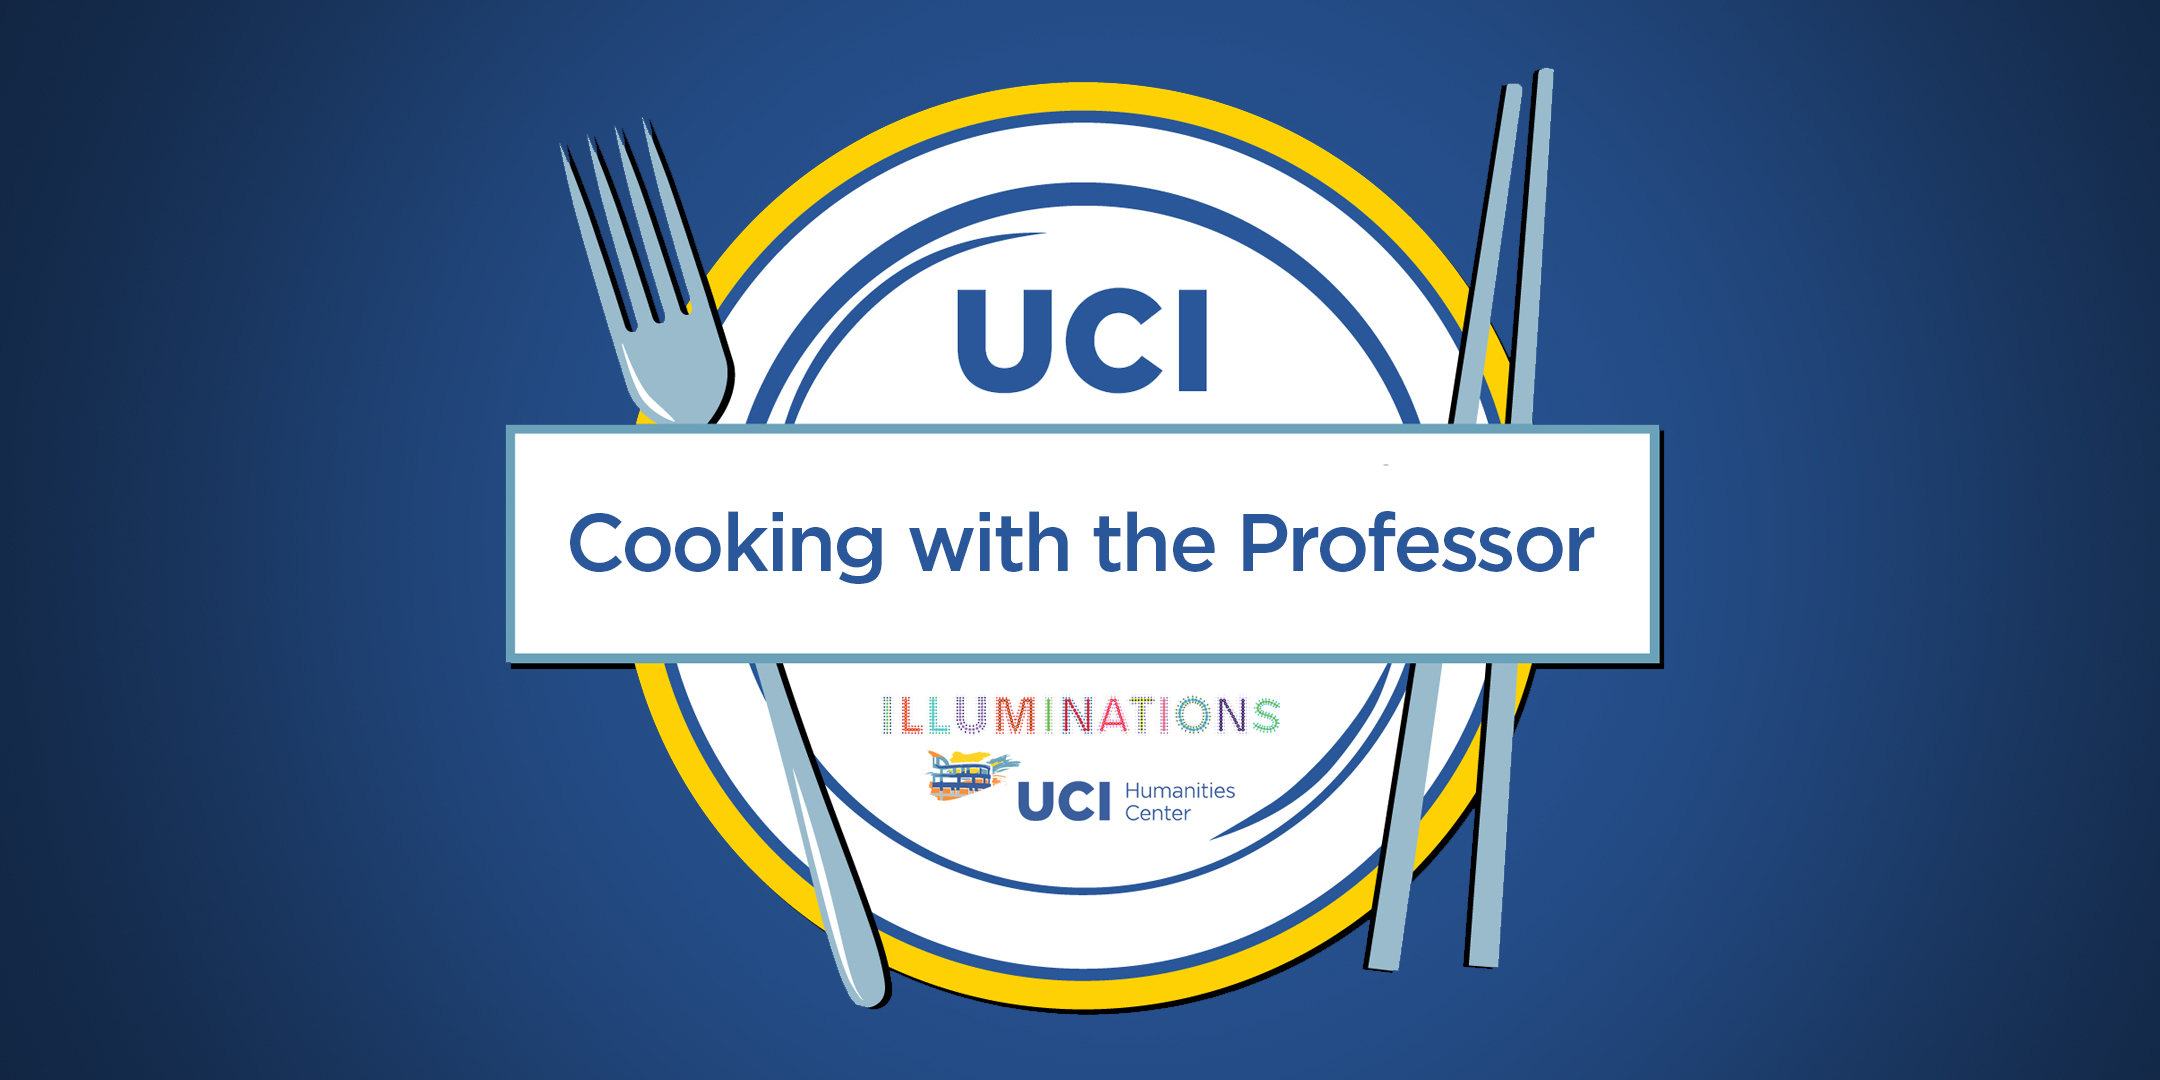 Cooking with the Professor